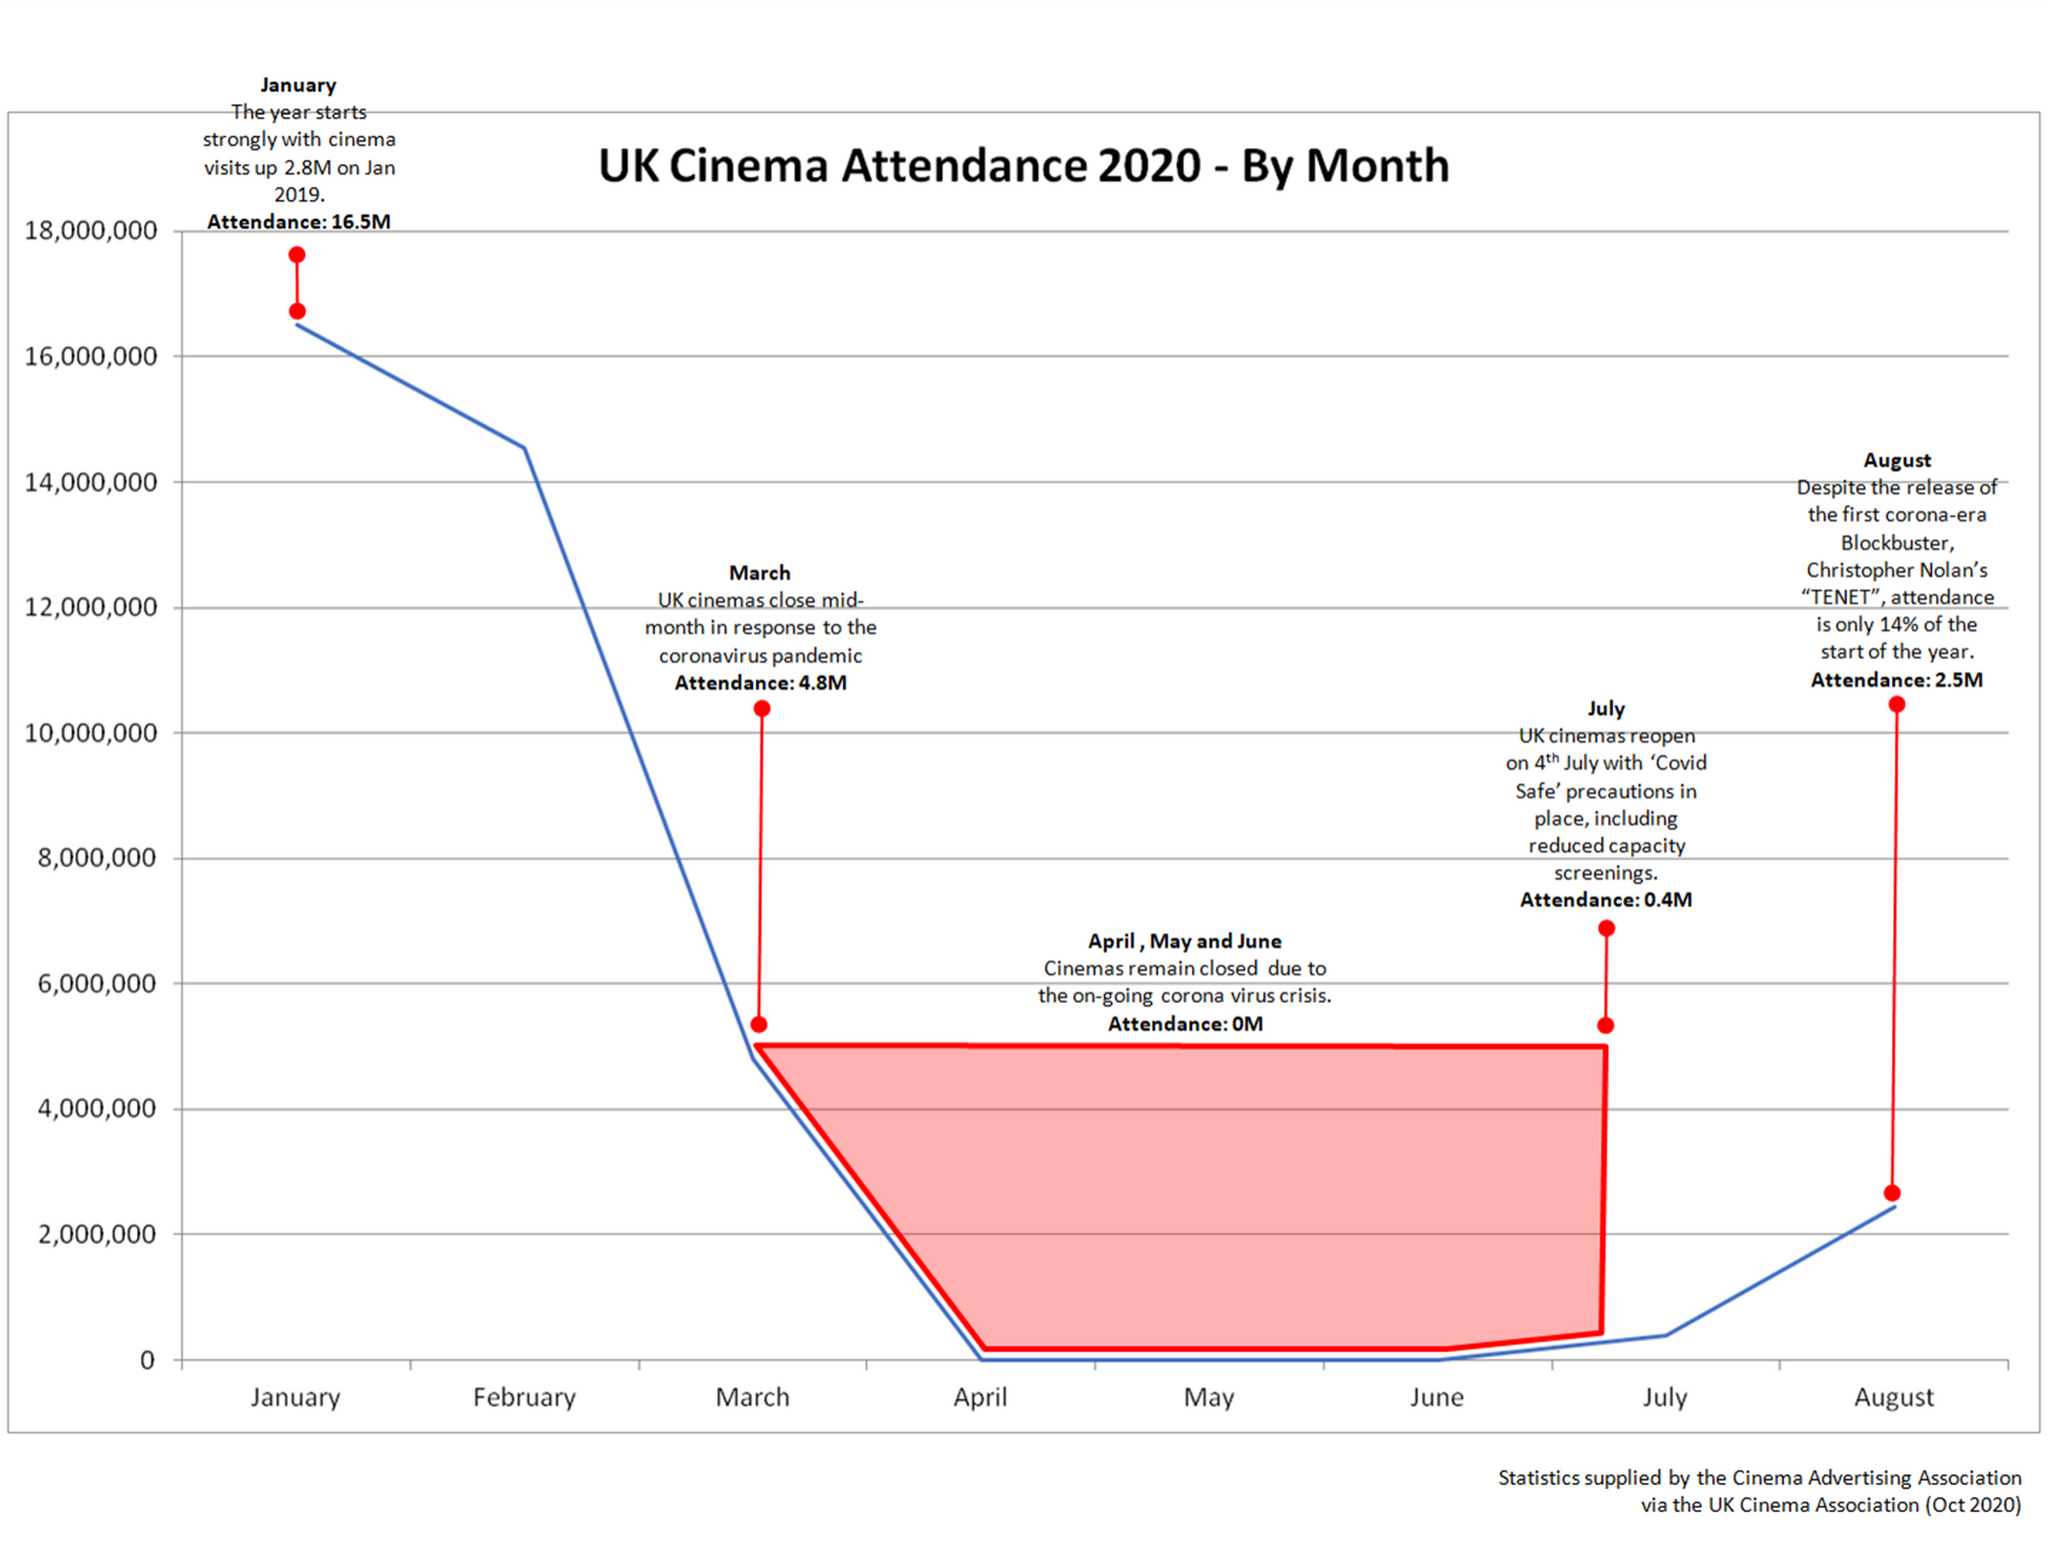 UK Cinema Attendance 2020 by Month